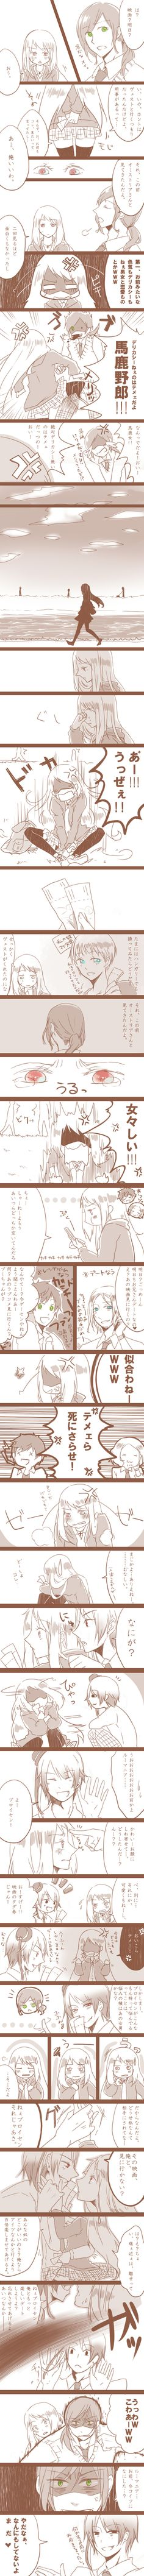 Tags: Anime, Cellphone, Phone, Axis Powers: Hetalia, France, Spain, Allied Forces. Prungria